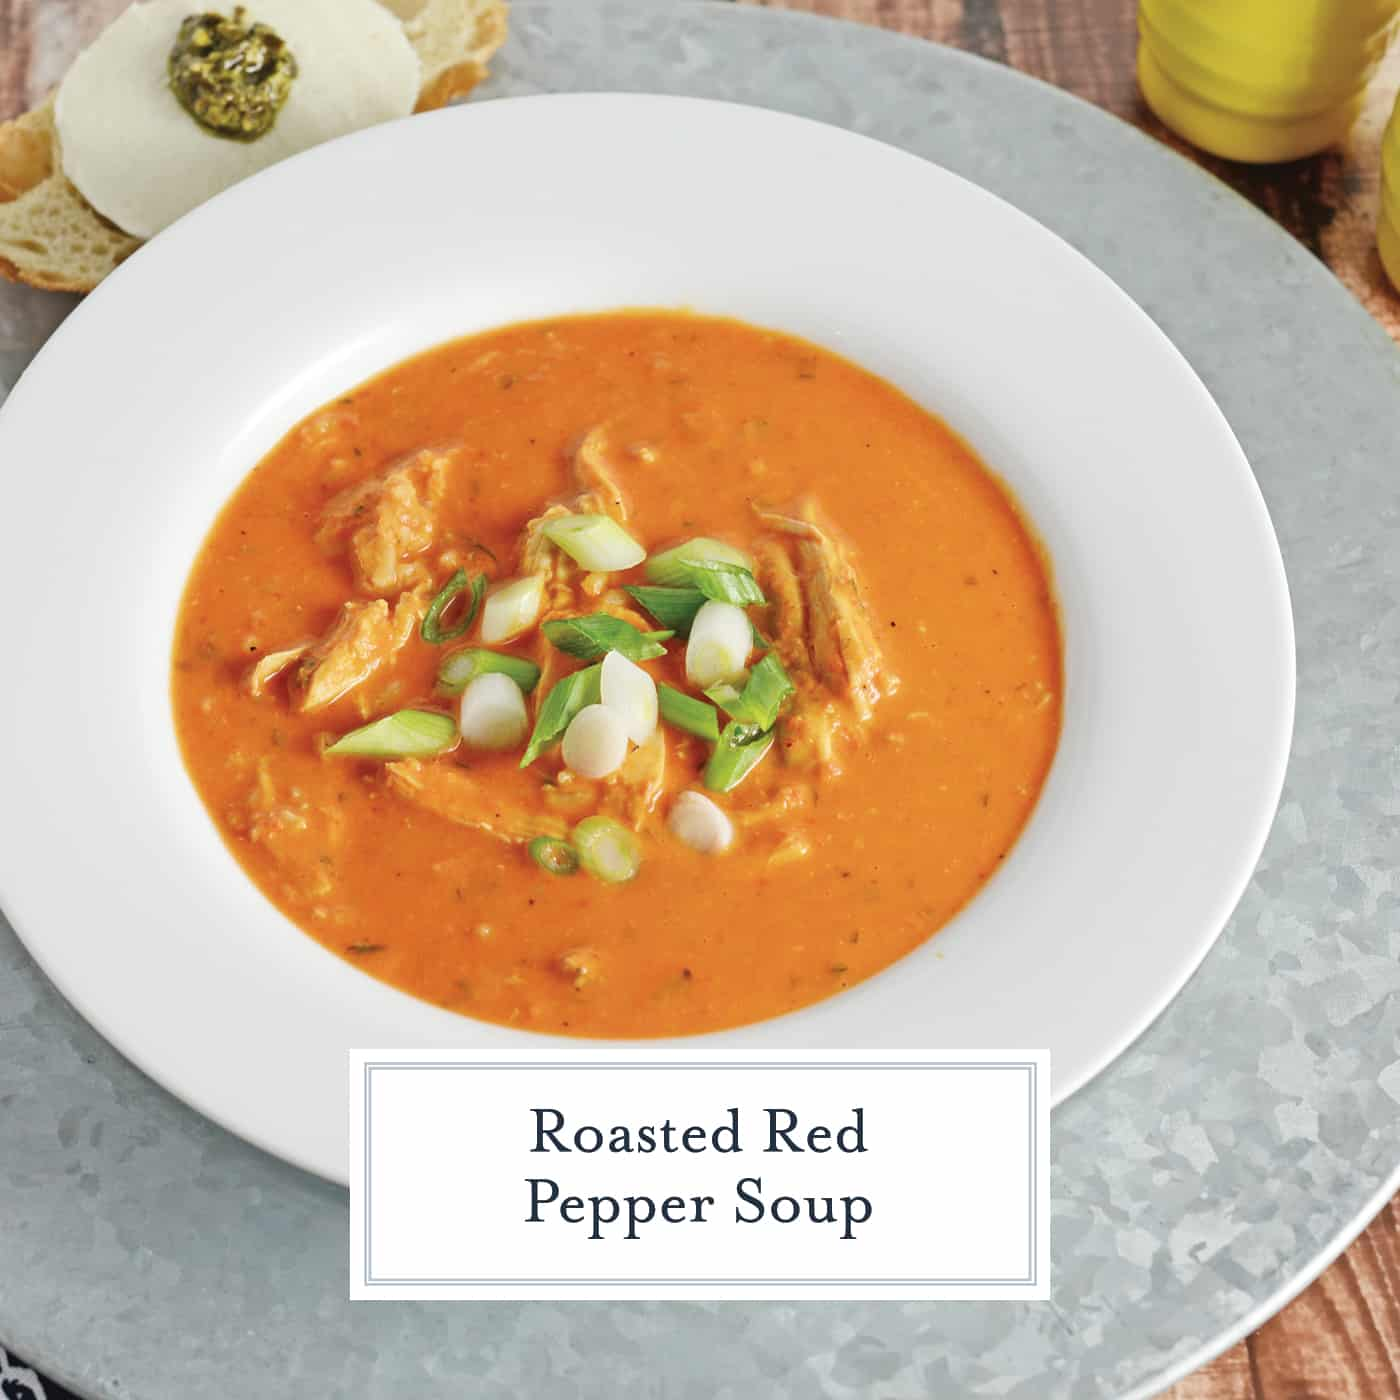 Roasted Red Pepper Soup is gluten and dairy free using hummus, roasted red peppers, pre-cooked chicken, and brown rice for a super quick and healthy soup! #roastedredpeppersoup #recipesthatusehummus #chickensoup www.savoryexperiments.com